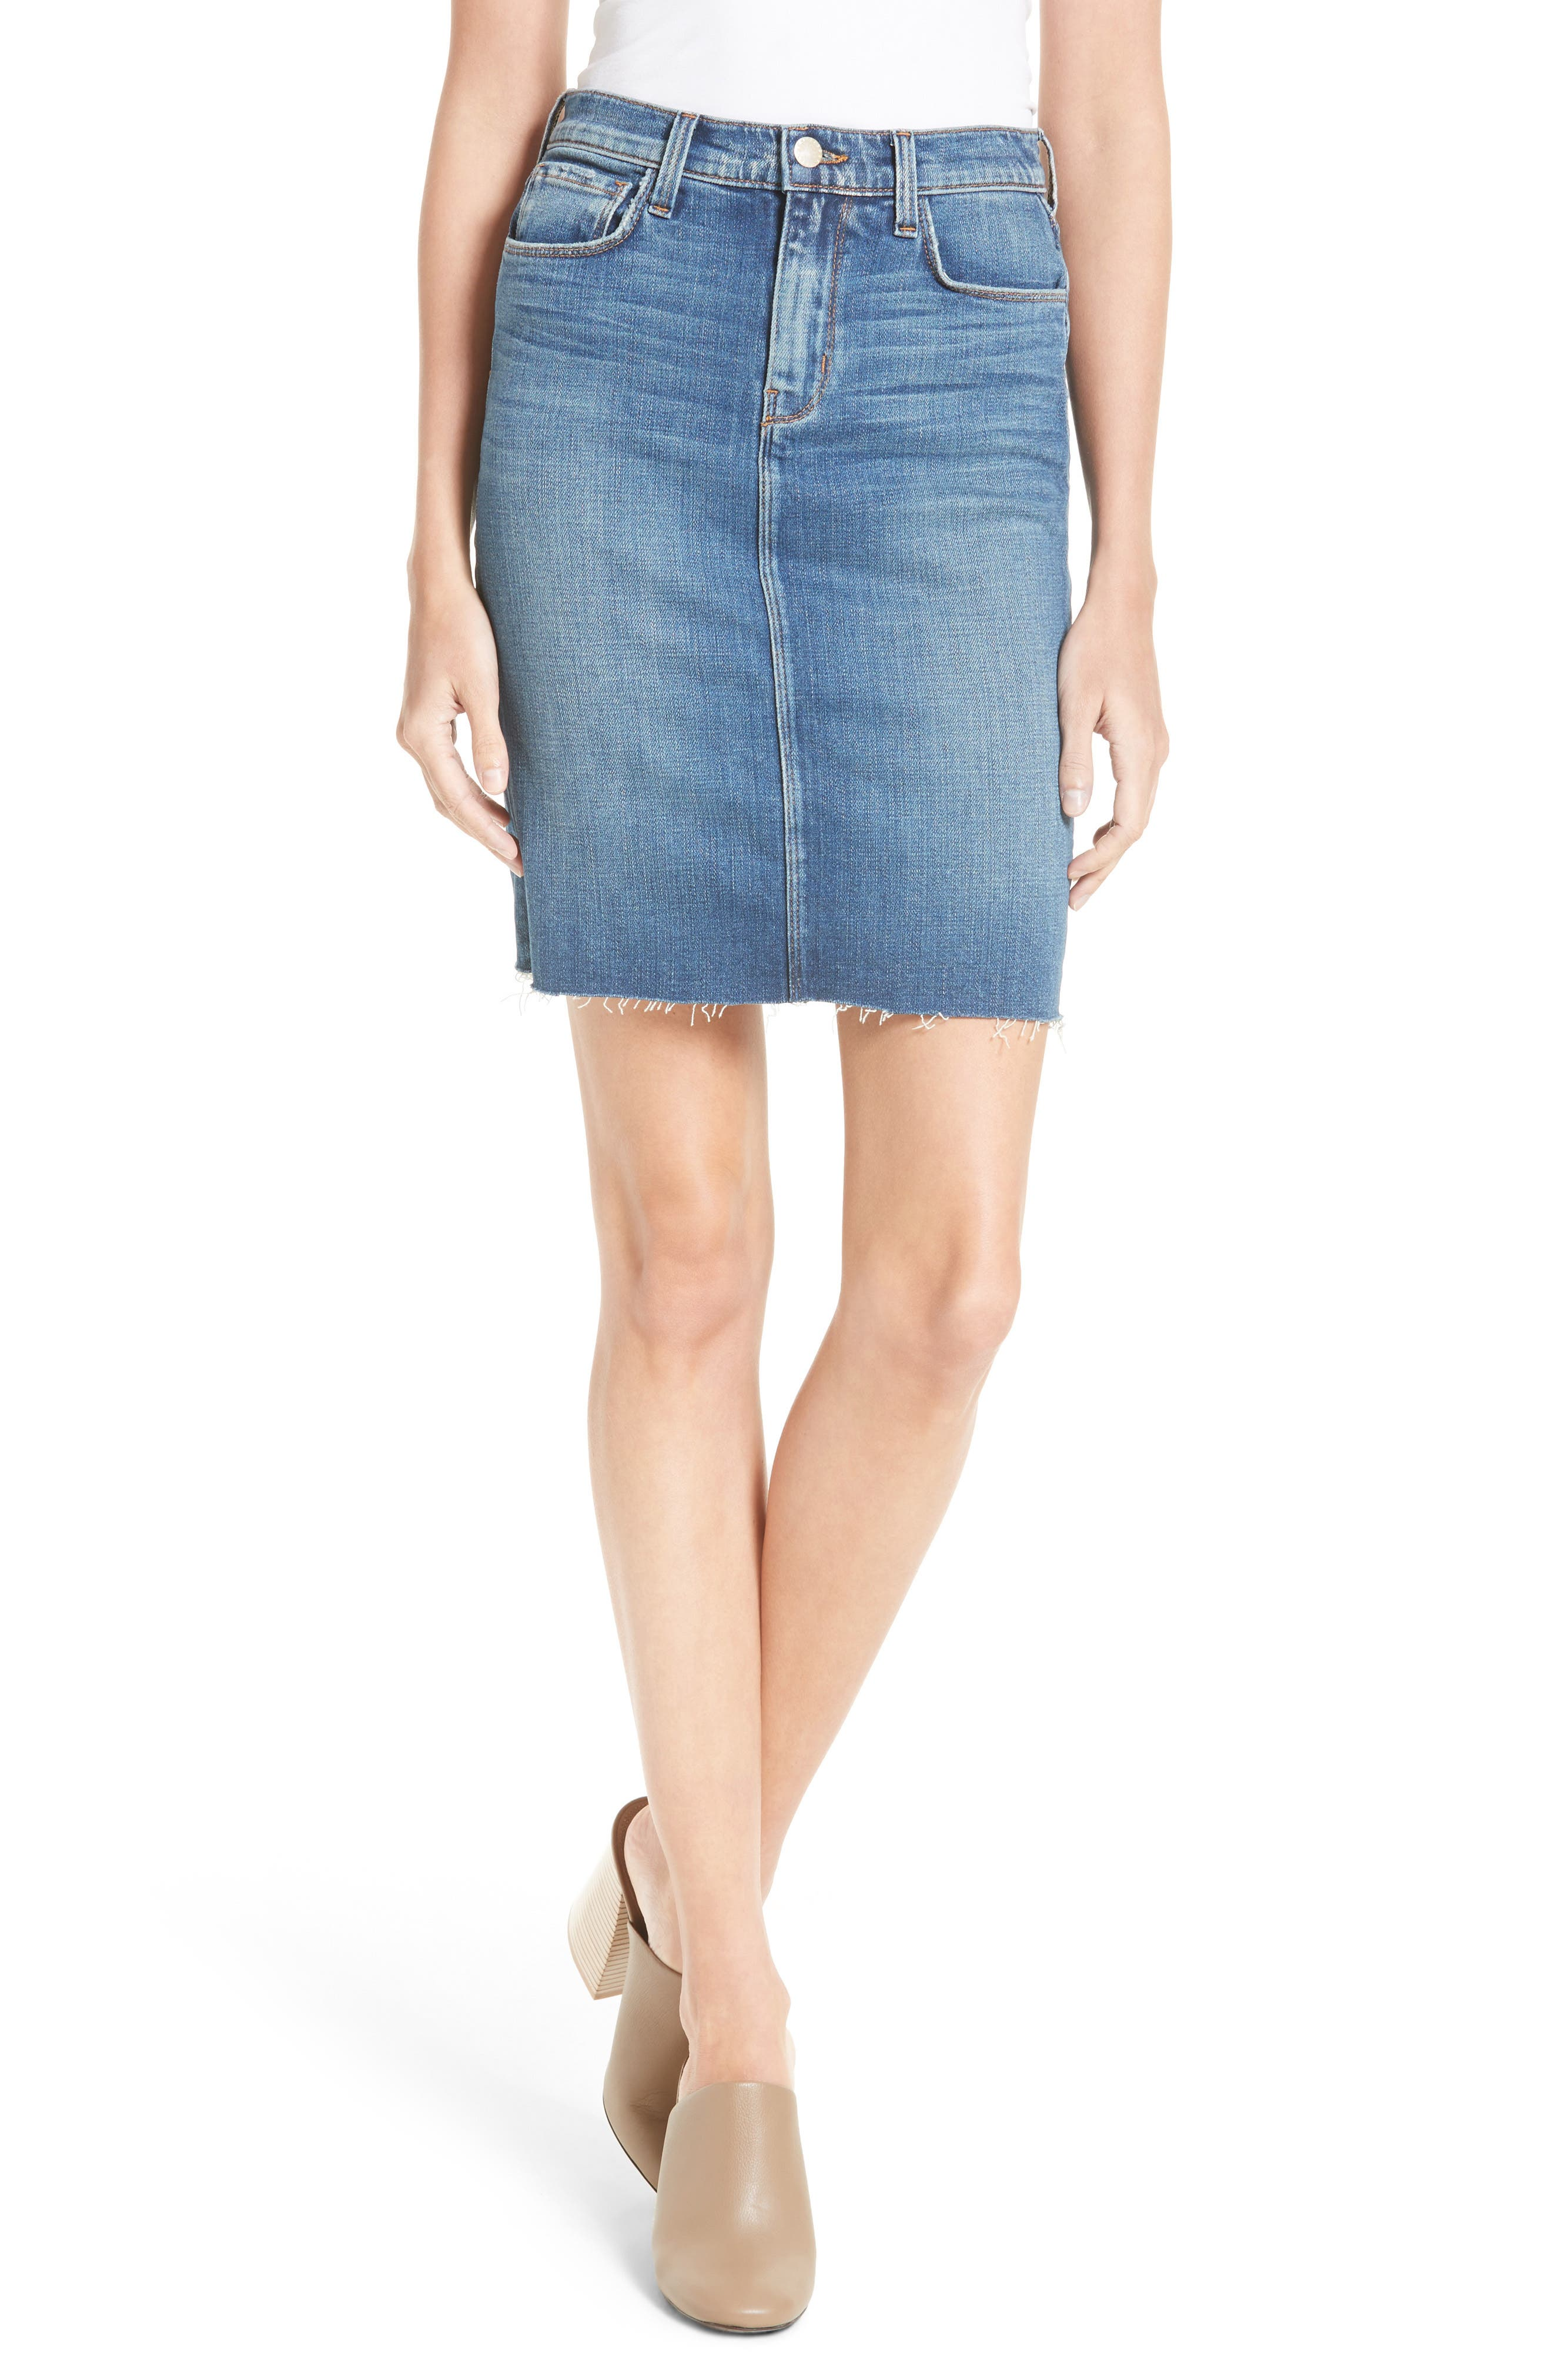 L'AGENCE Montecito High Rise Denim Pencil Skirt